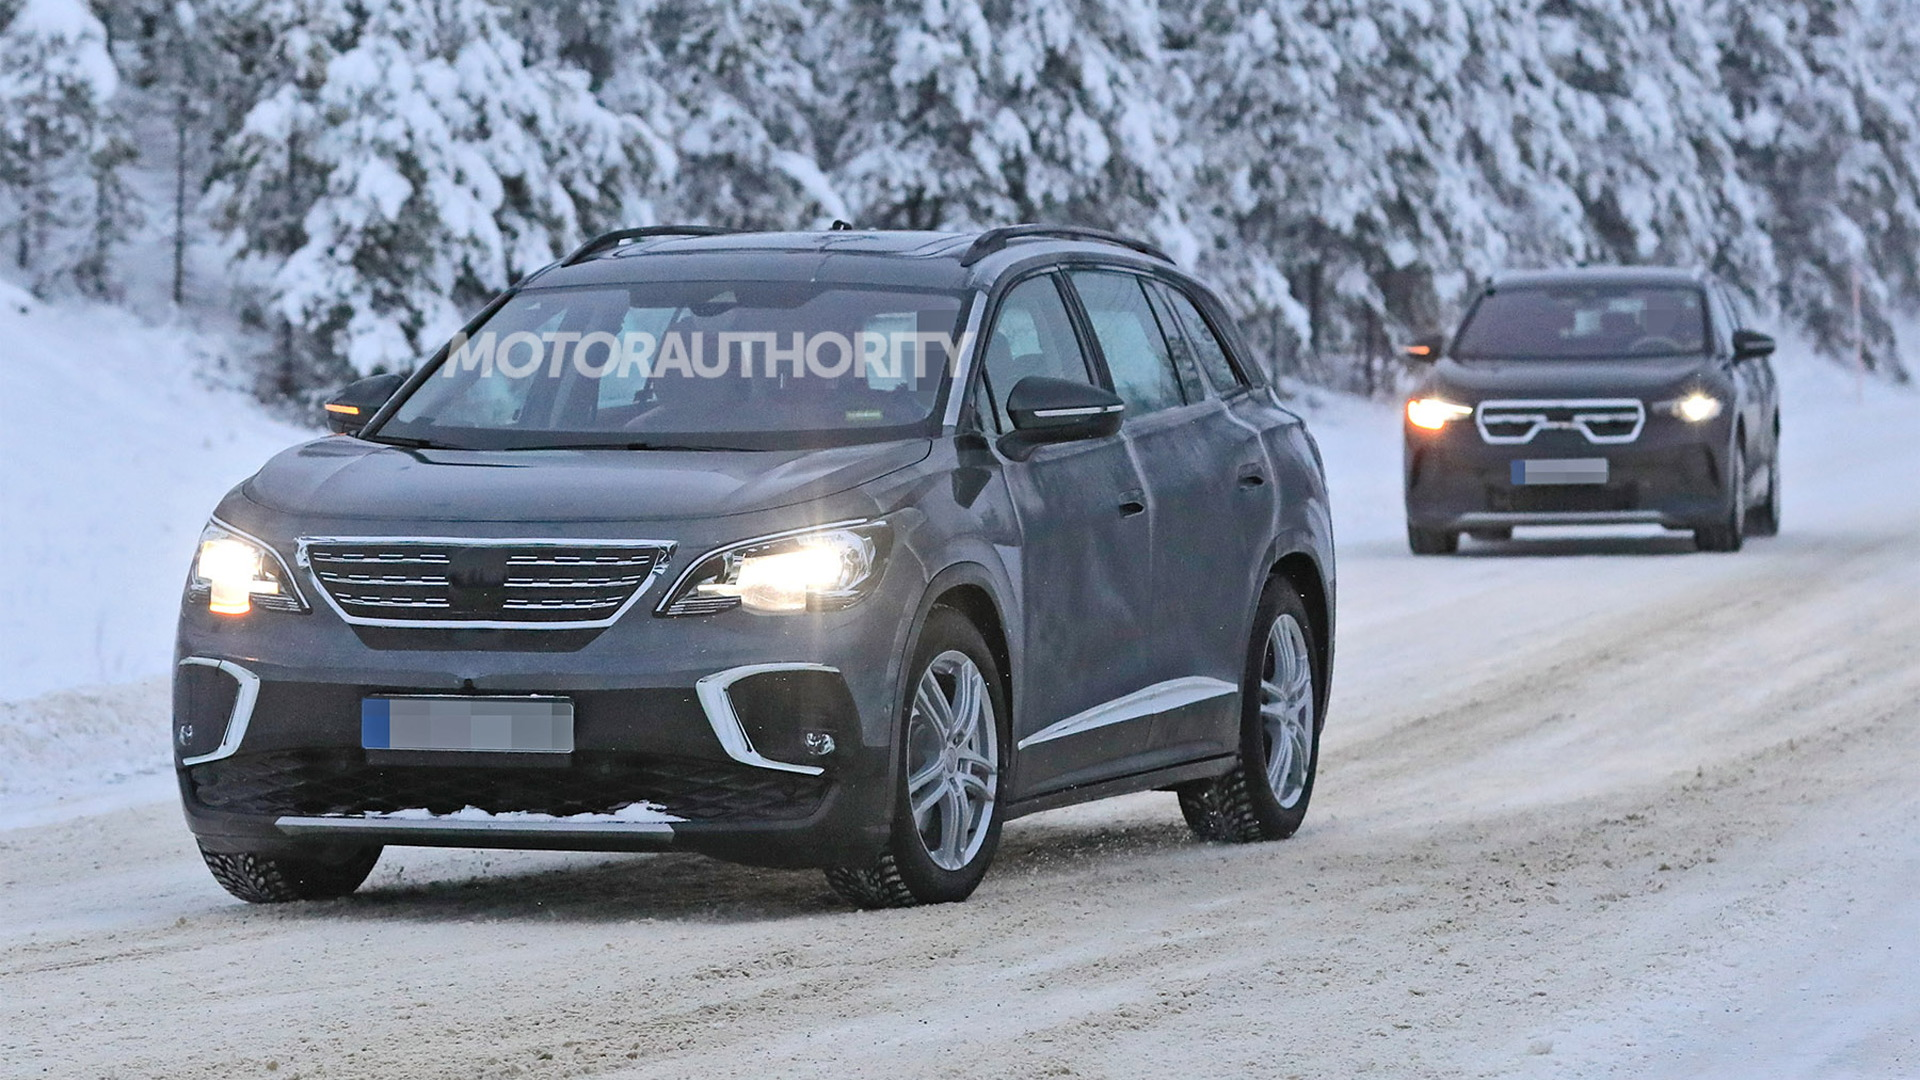 2022 Volkswagen ID.6 spy shots - Photo credit: S. Baldauf/SB-Medien